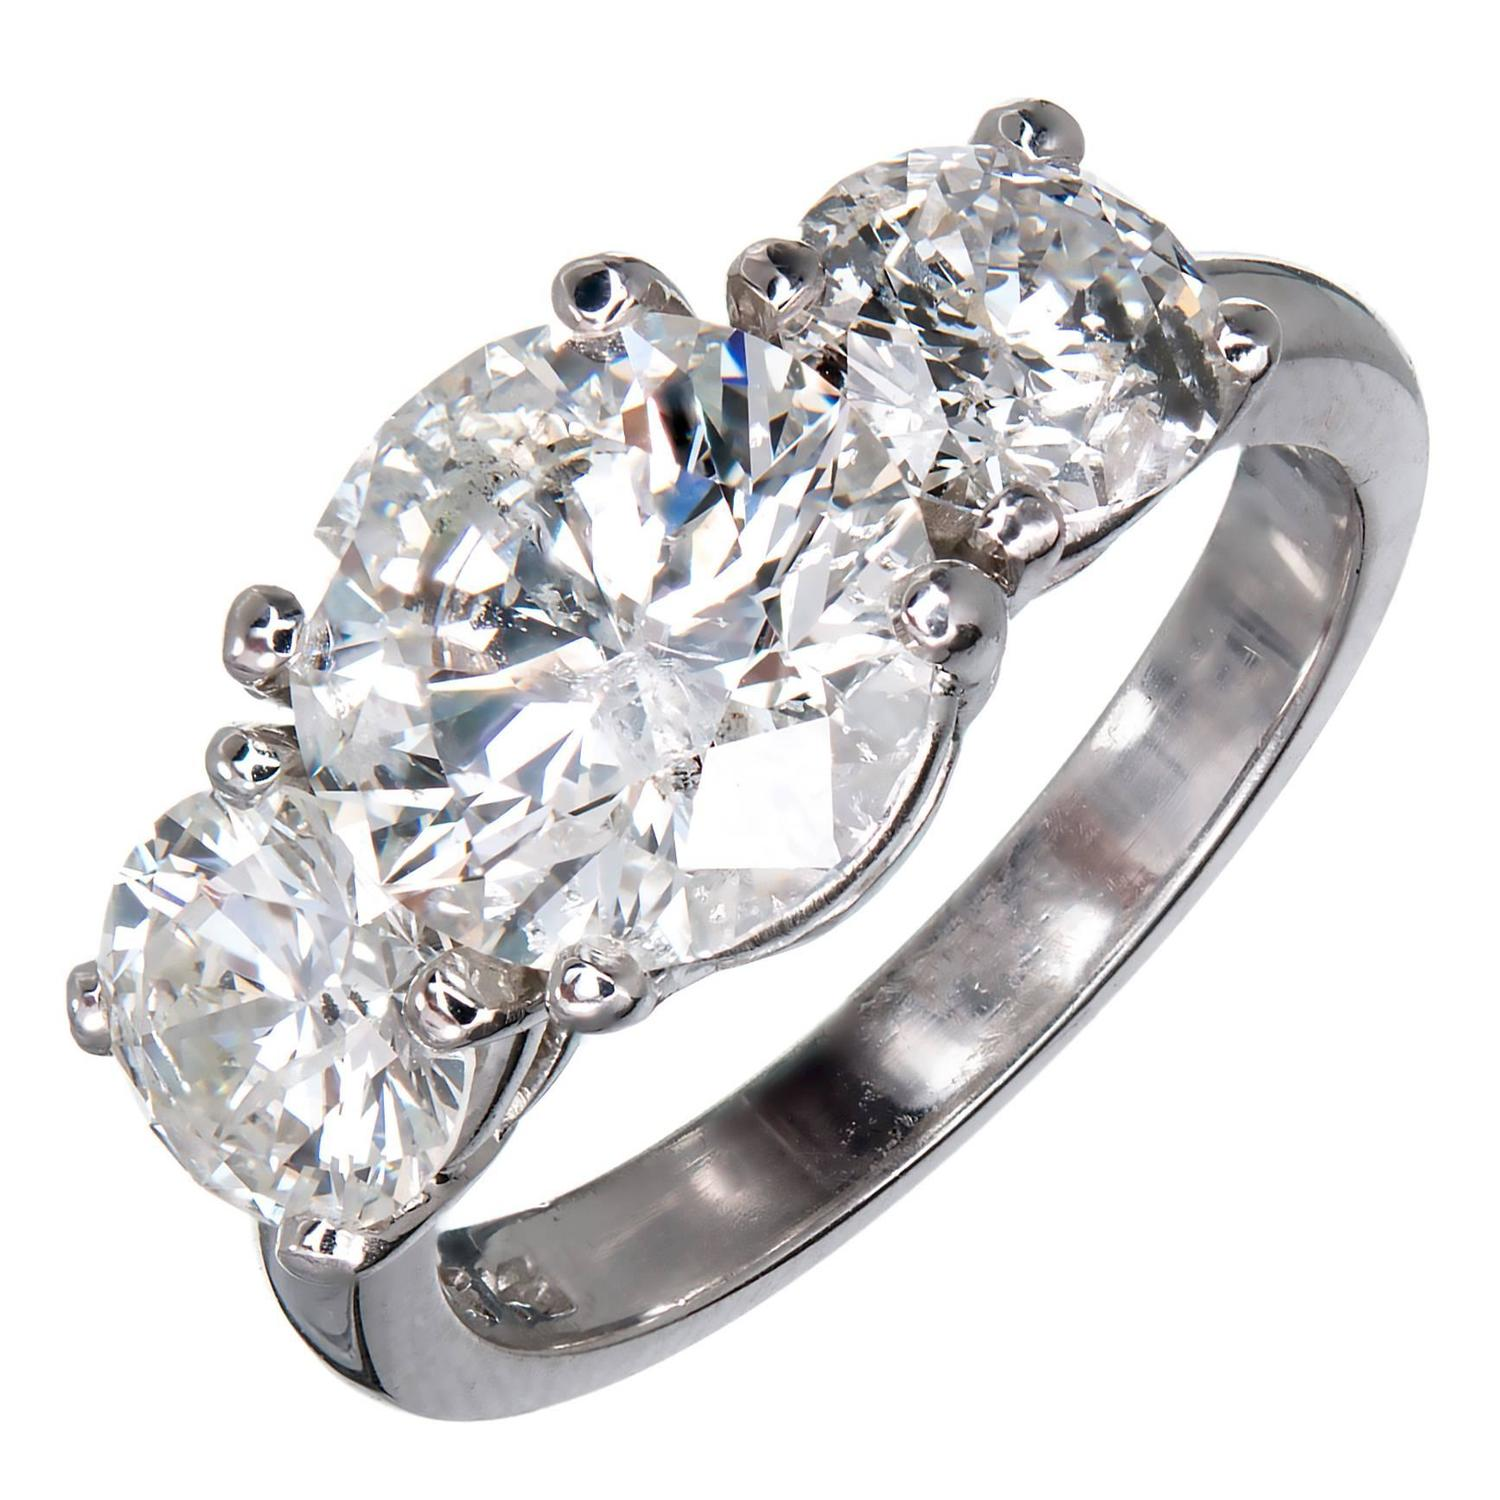 MG Three Stone Diamond Platinum Engagement Ring For Sale at 1stdibs